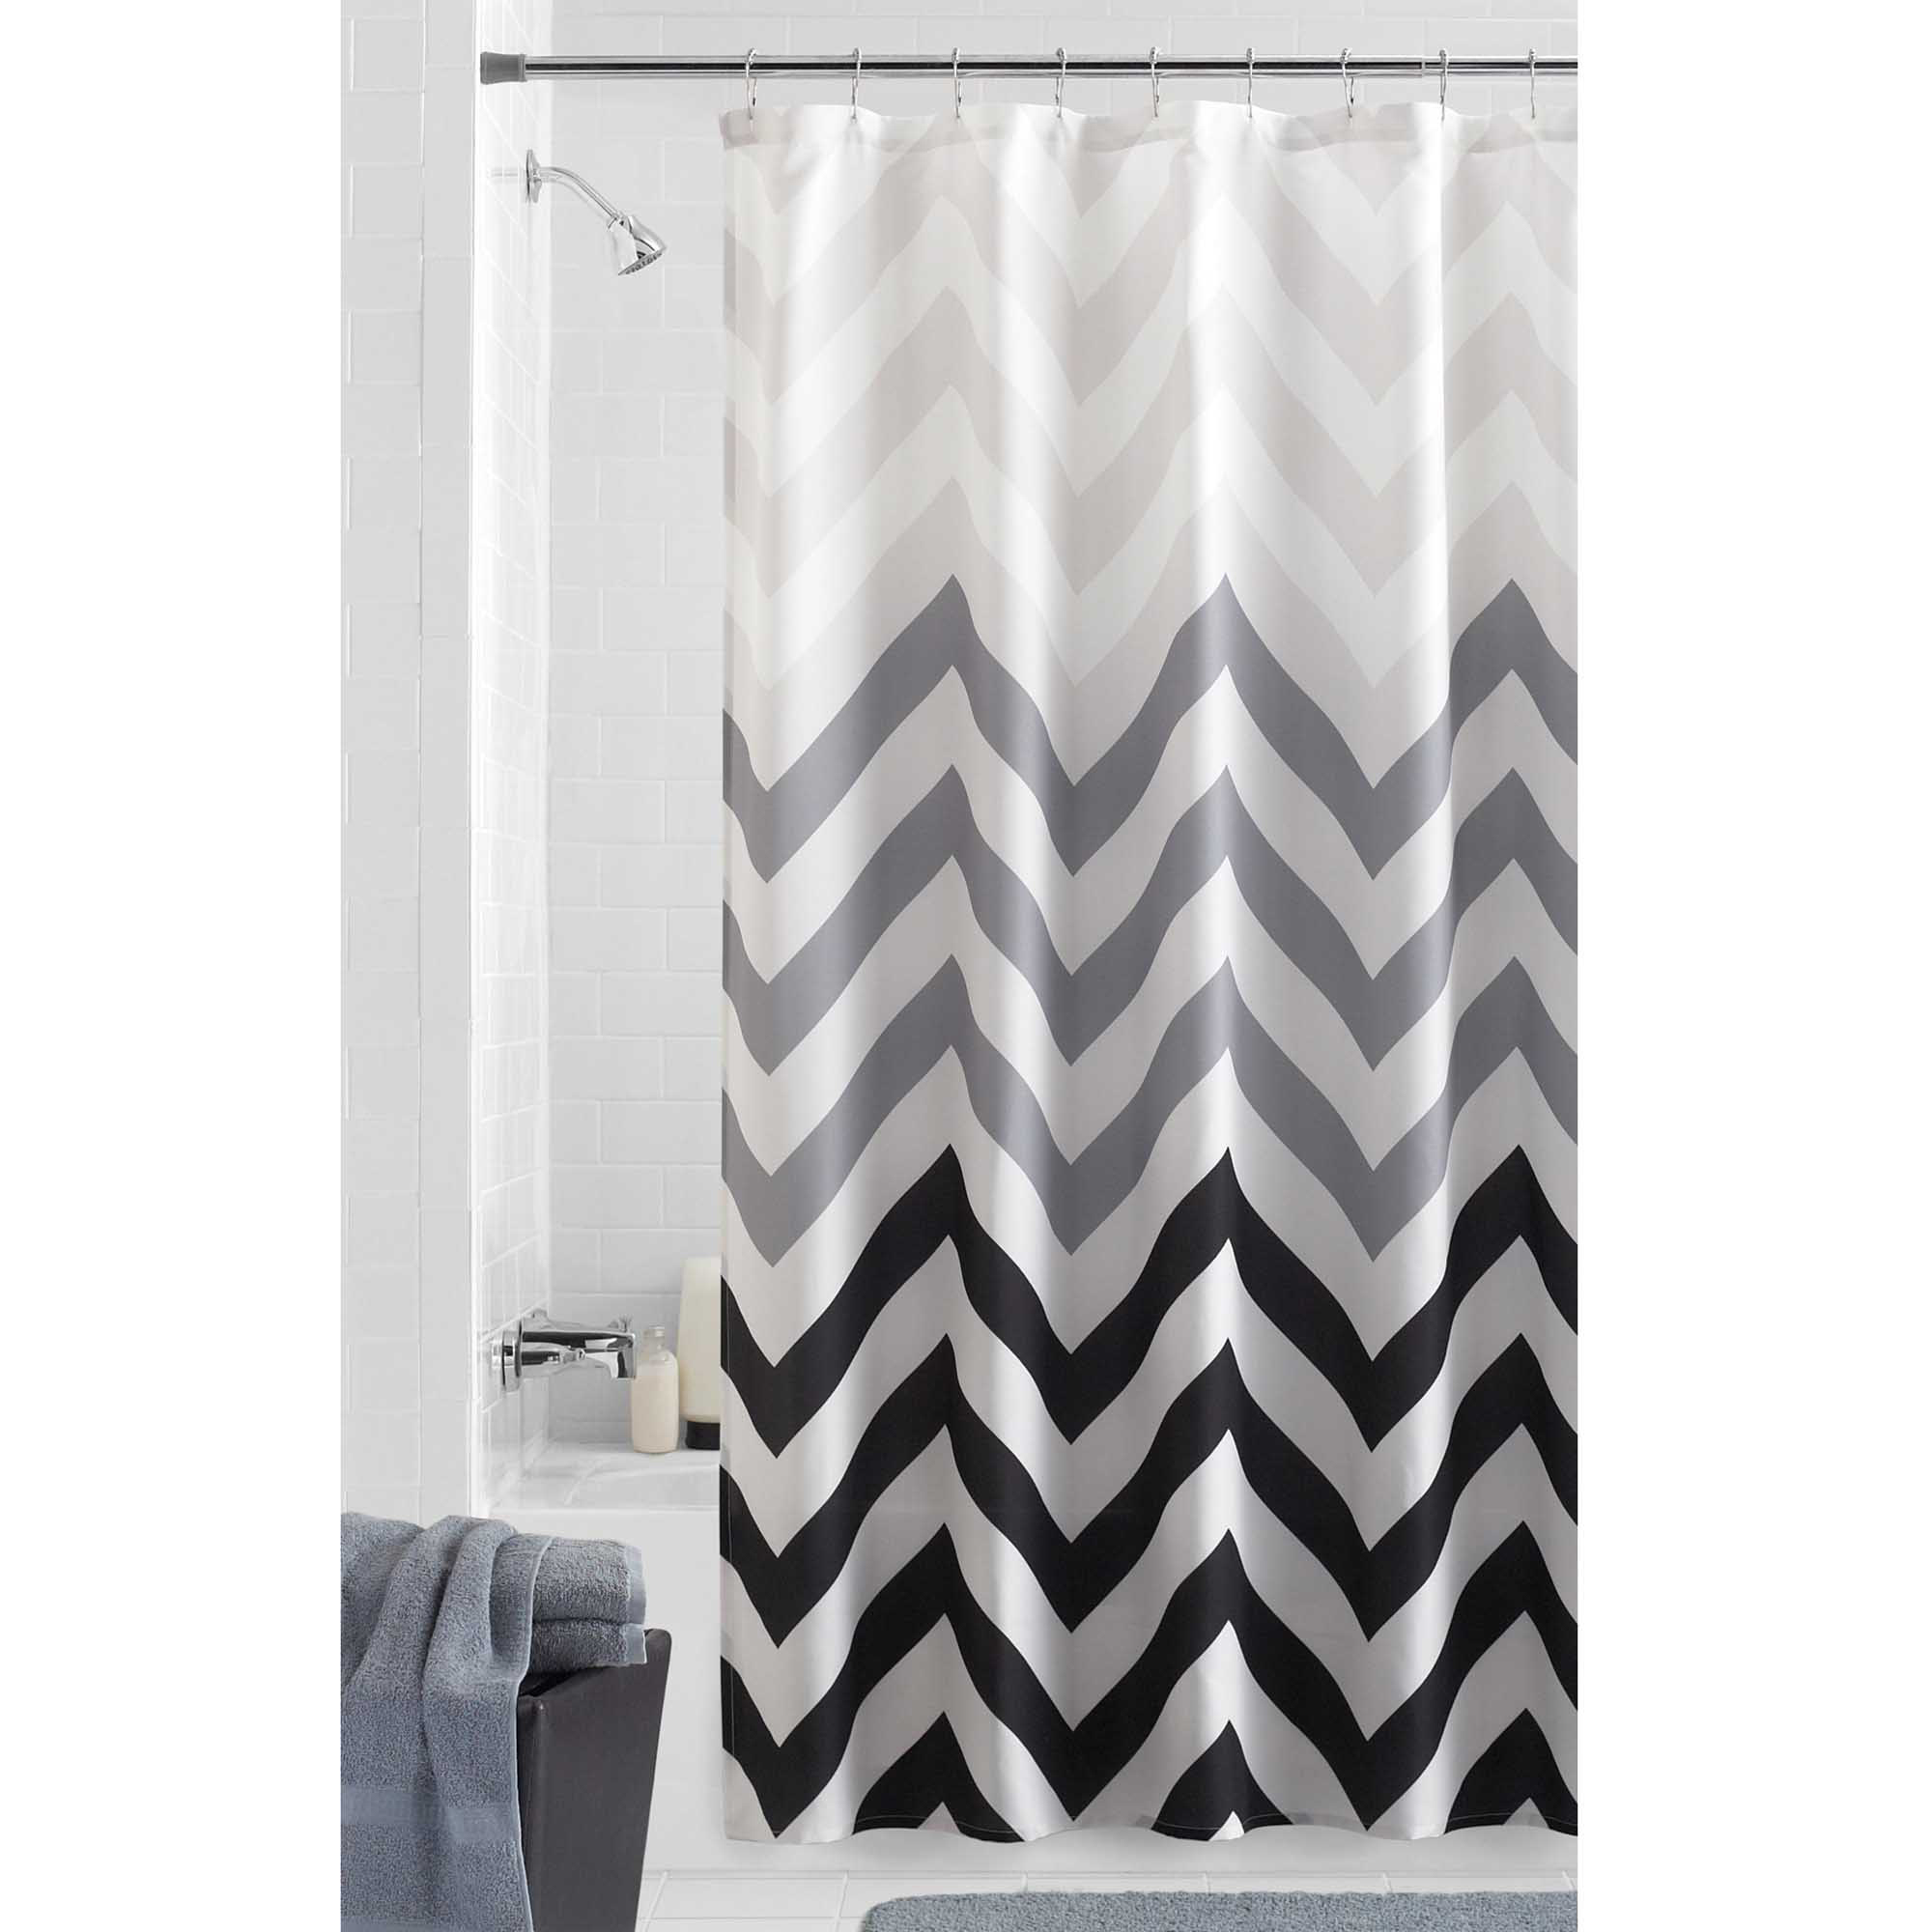 Mainstays Flux Fabric Shower Curtain by Maytex Mills Inc